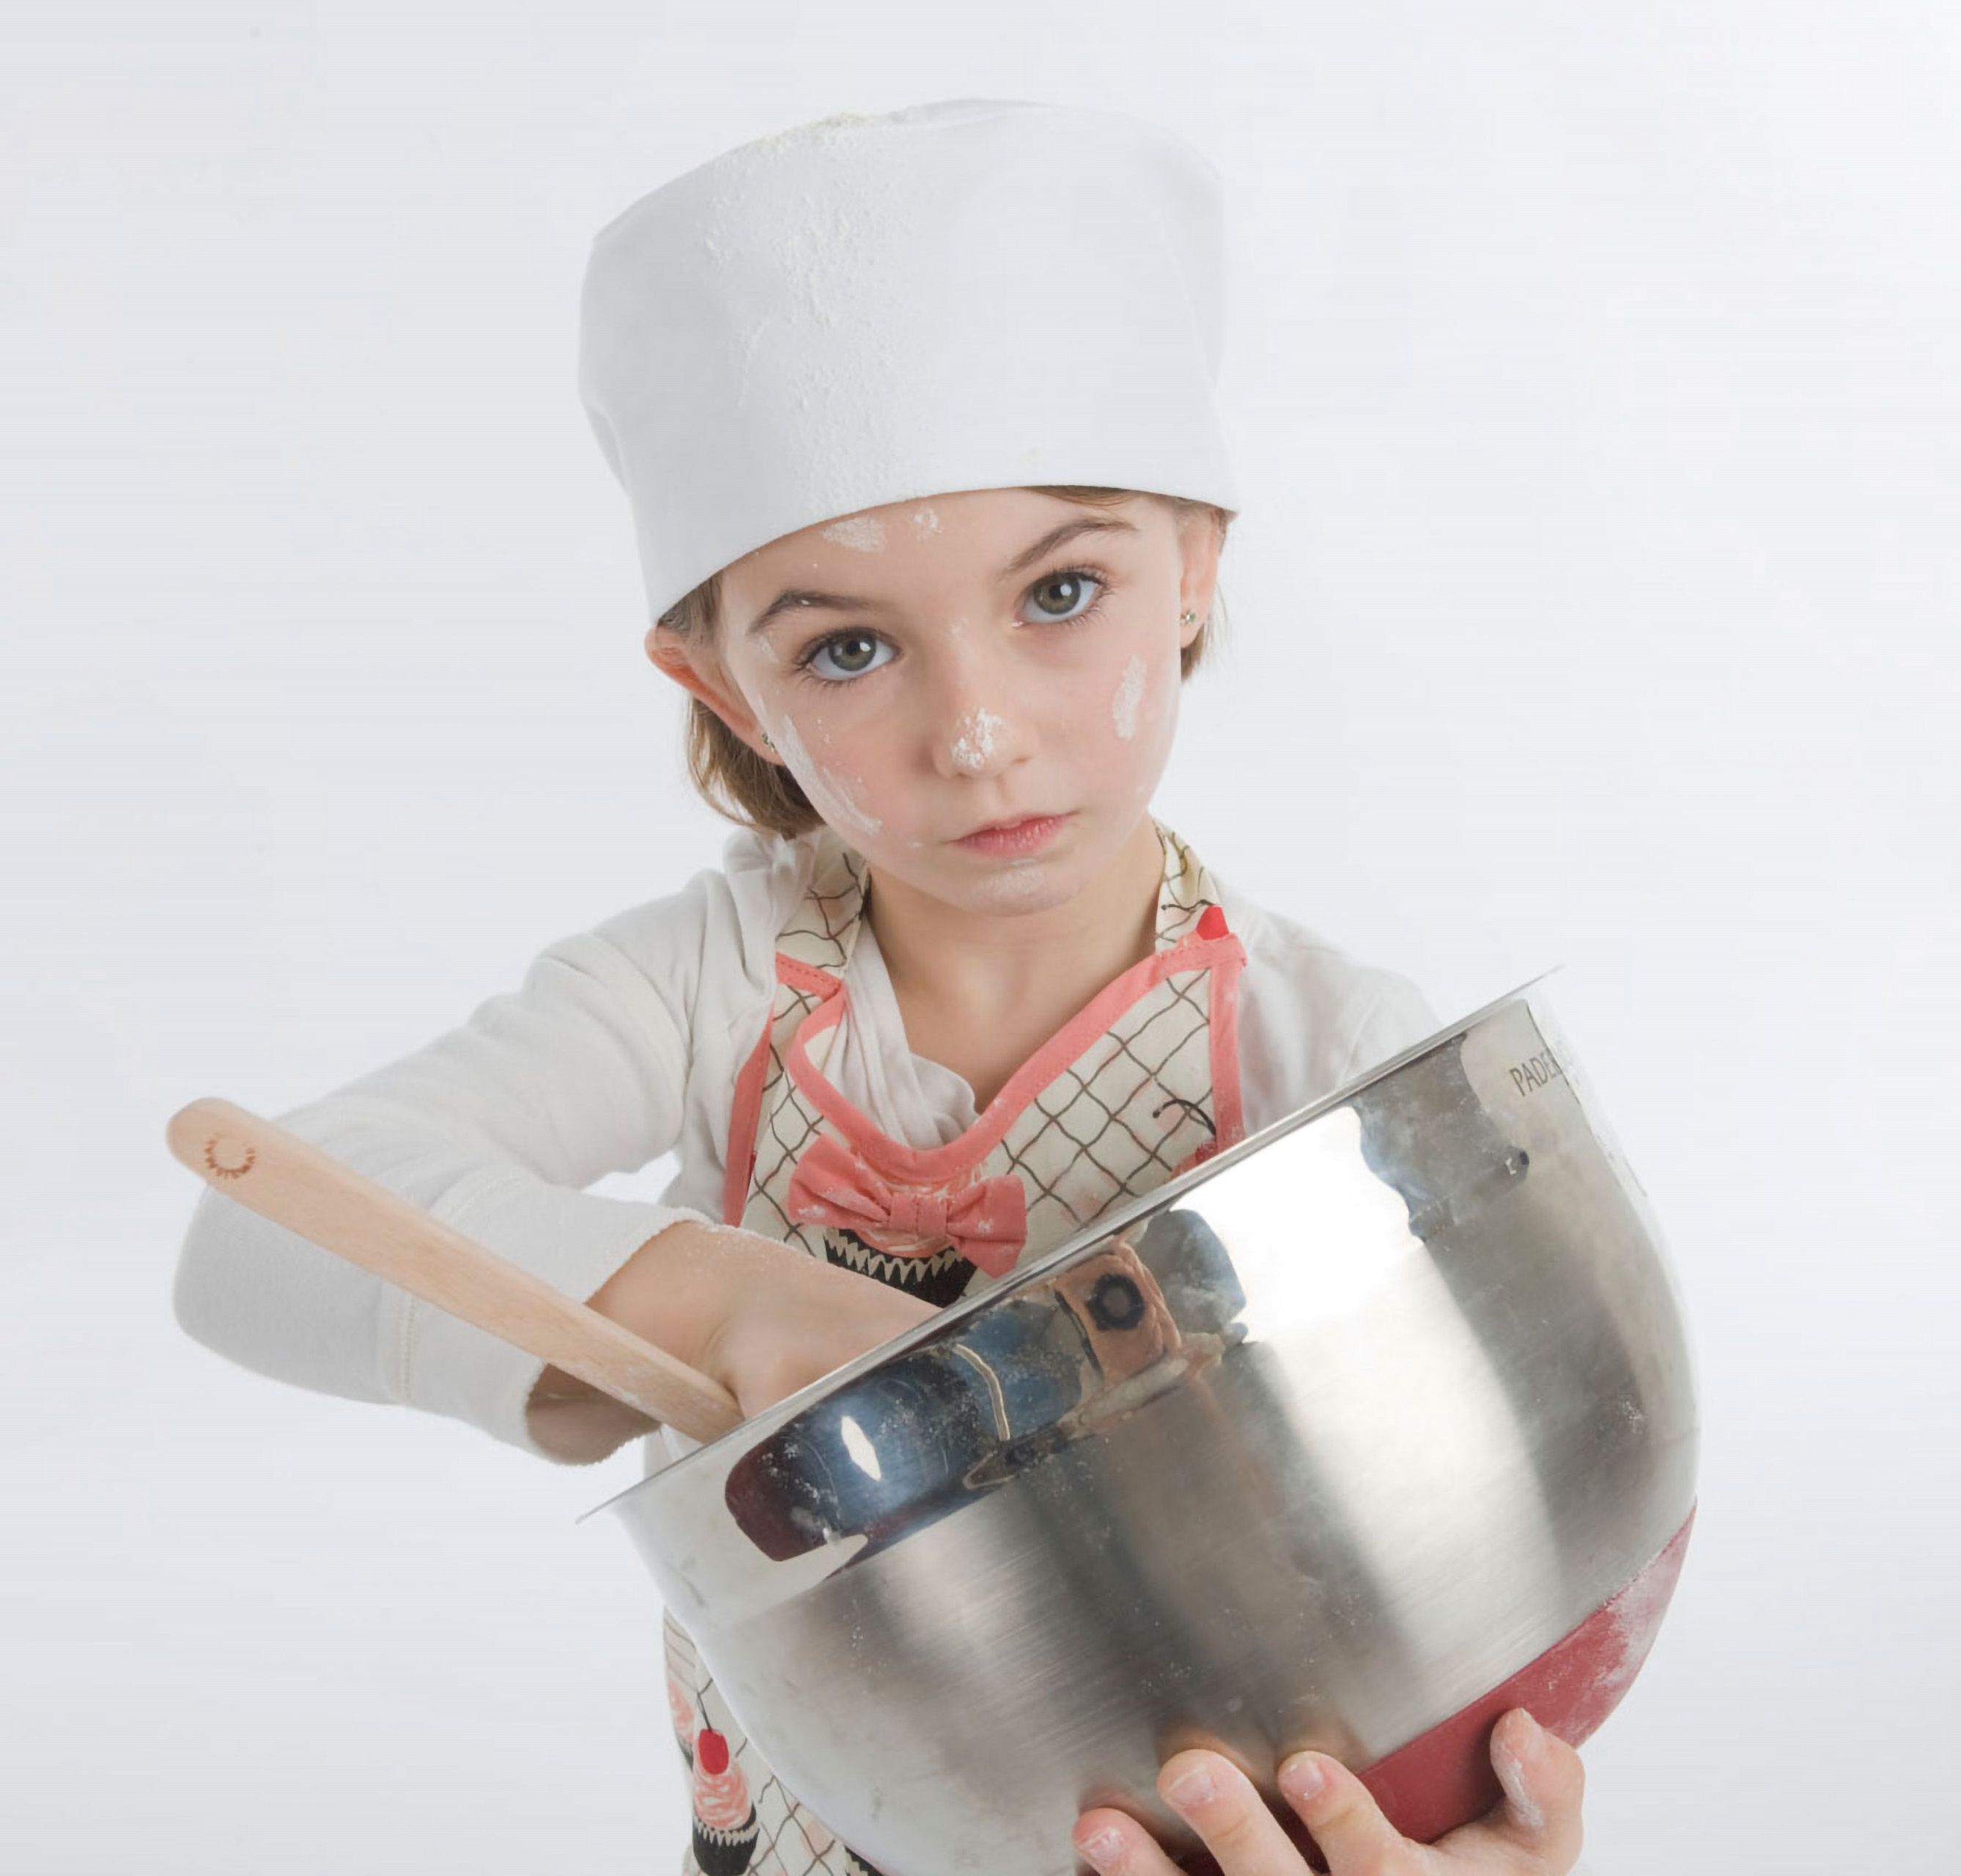 Commercial studio advertising photoshoot young girl chef and a bowl of frosting